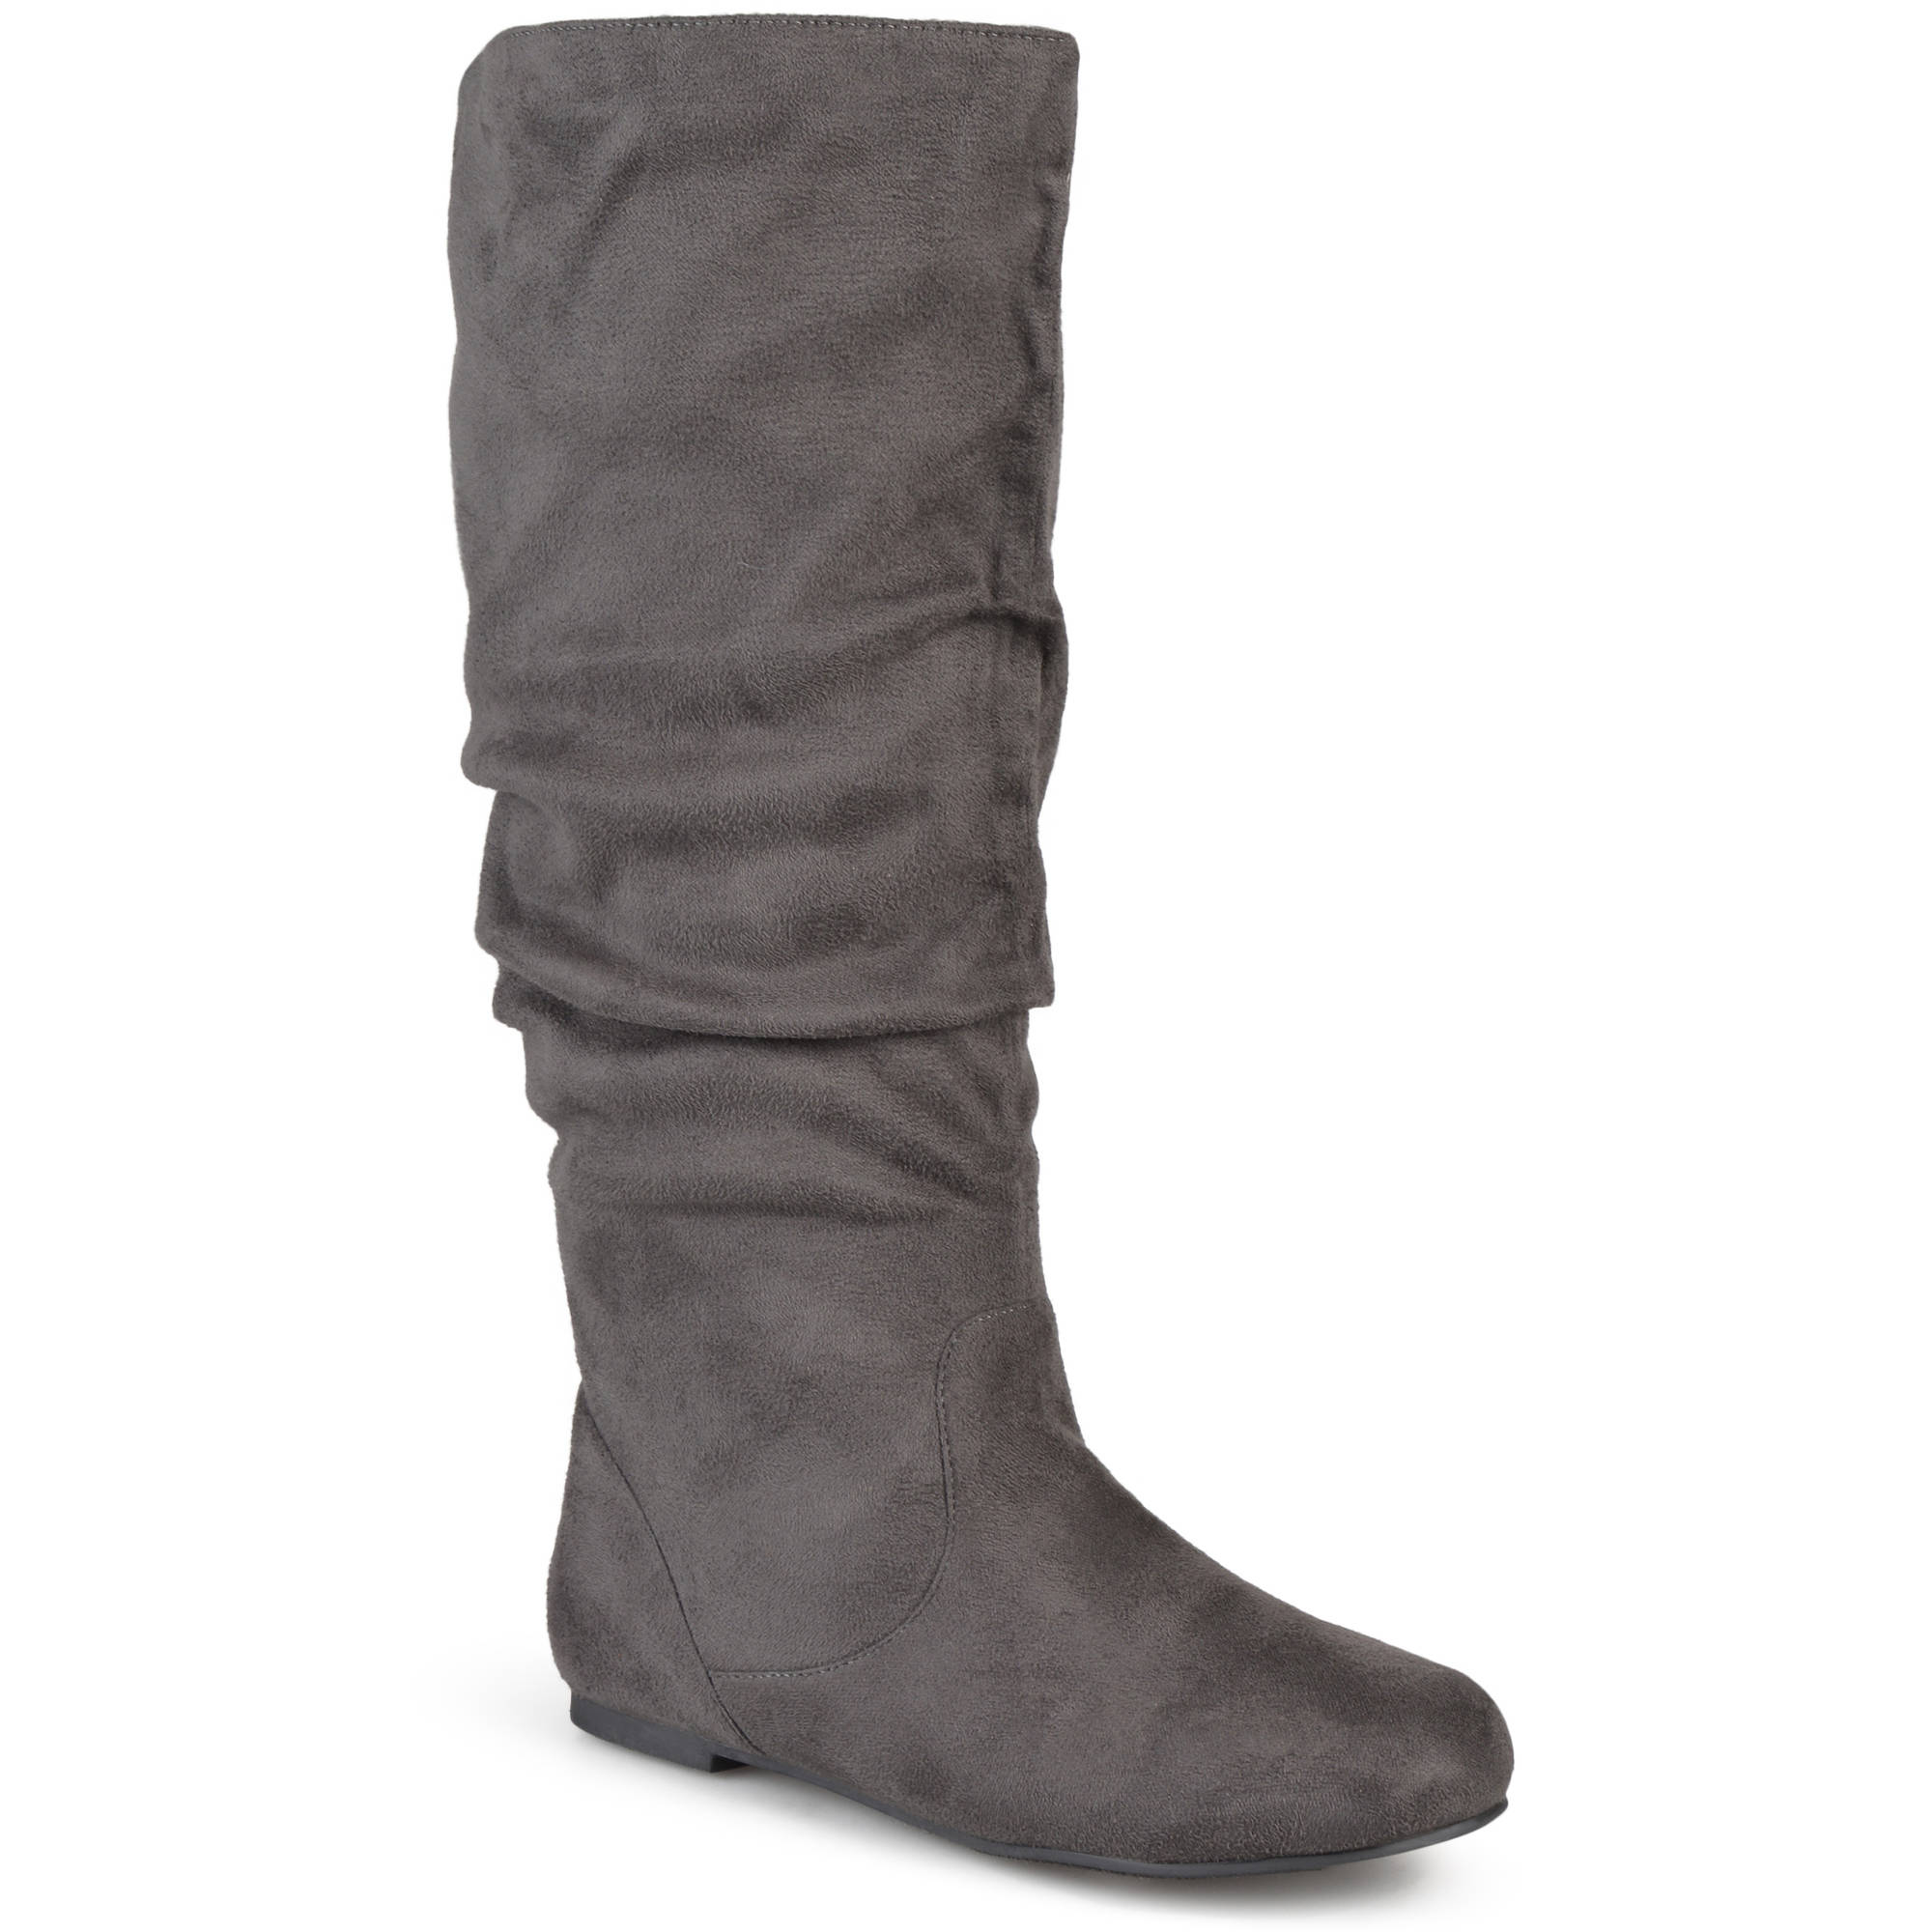 Brinley Co. Women's Slouchy Microsuede Wide Width Tall Boots